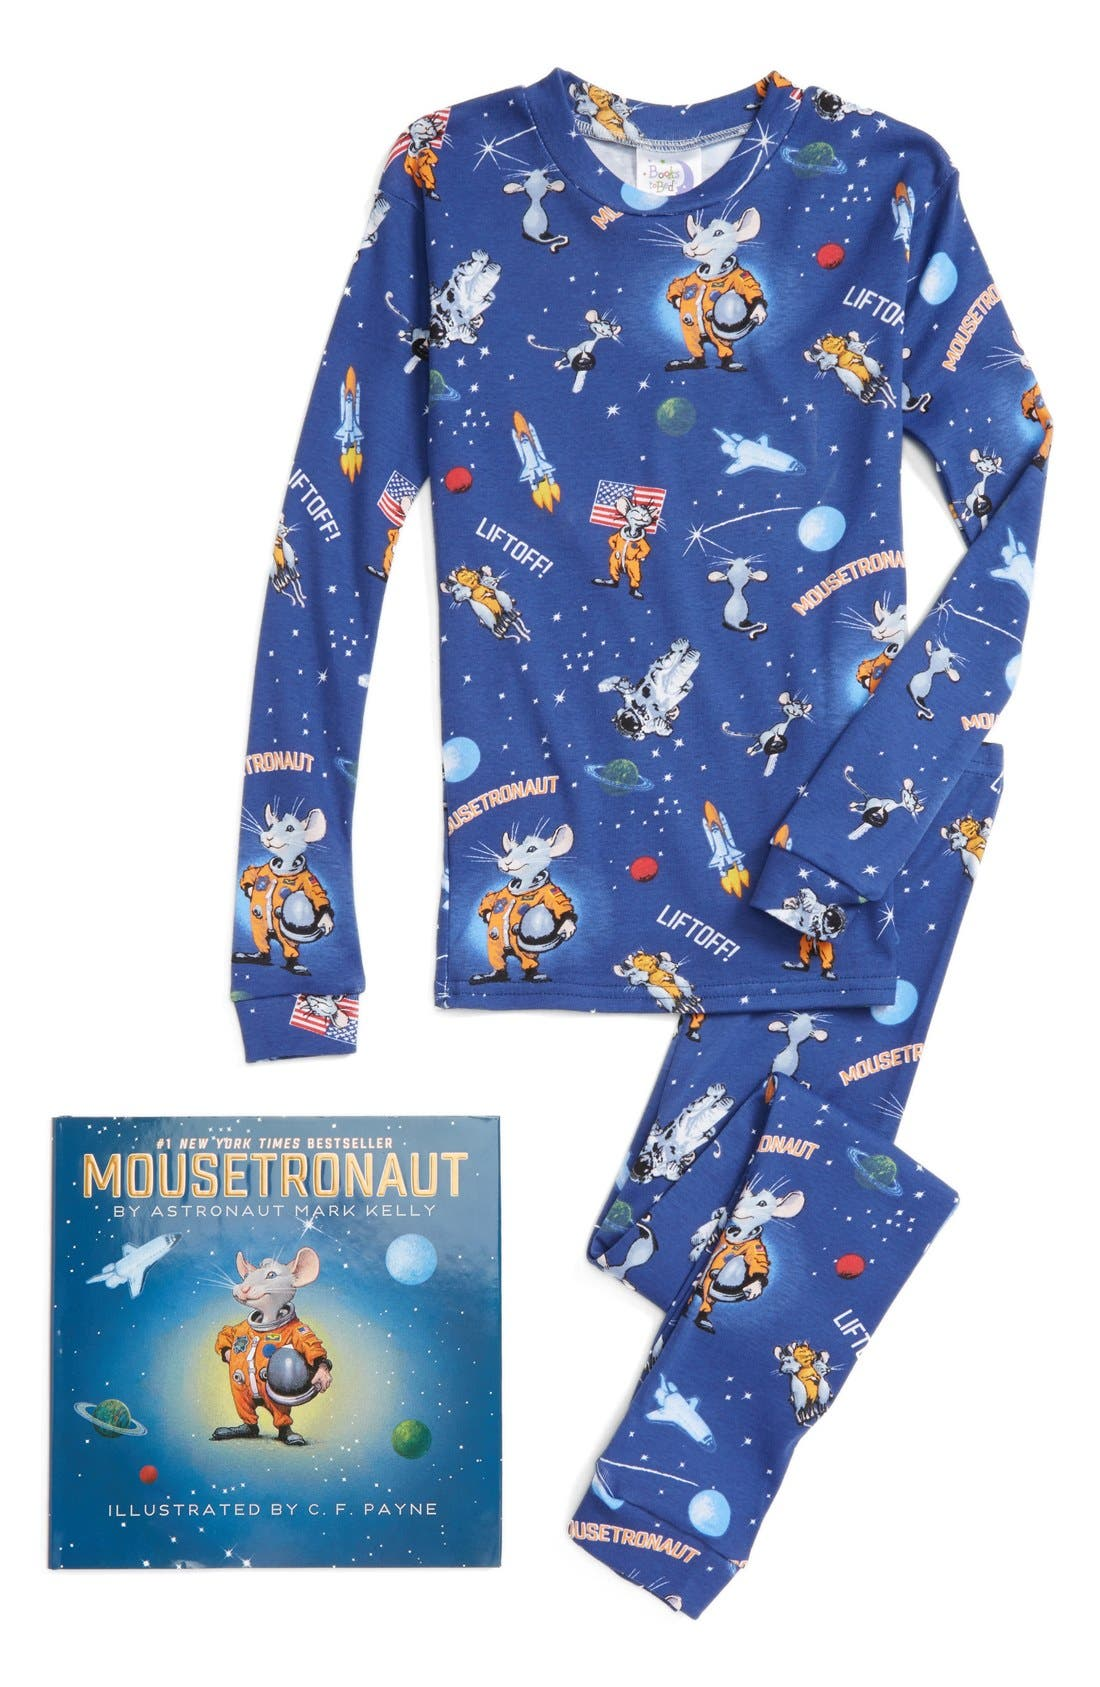 Mousetronaut Fitted Two-Piece Pajamas & Book Set,                             Main thumbnail 1, color,                             410